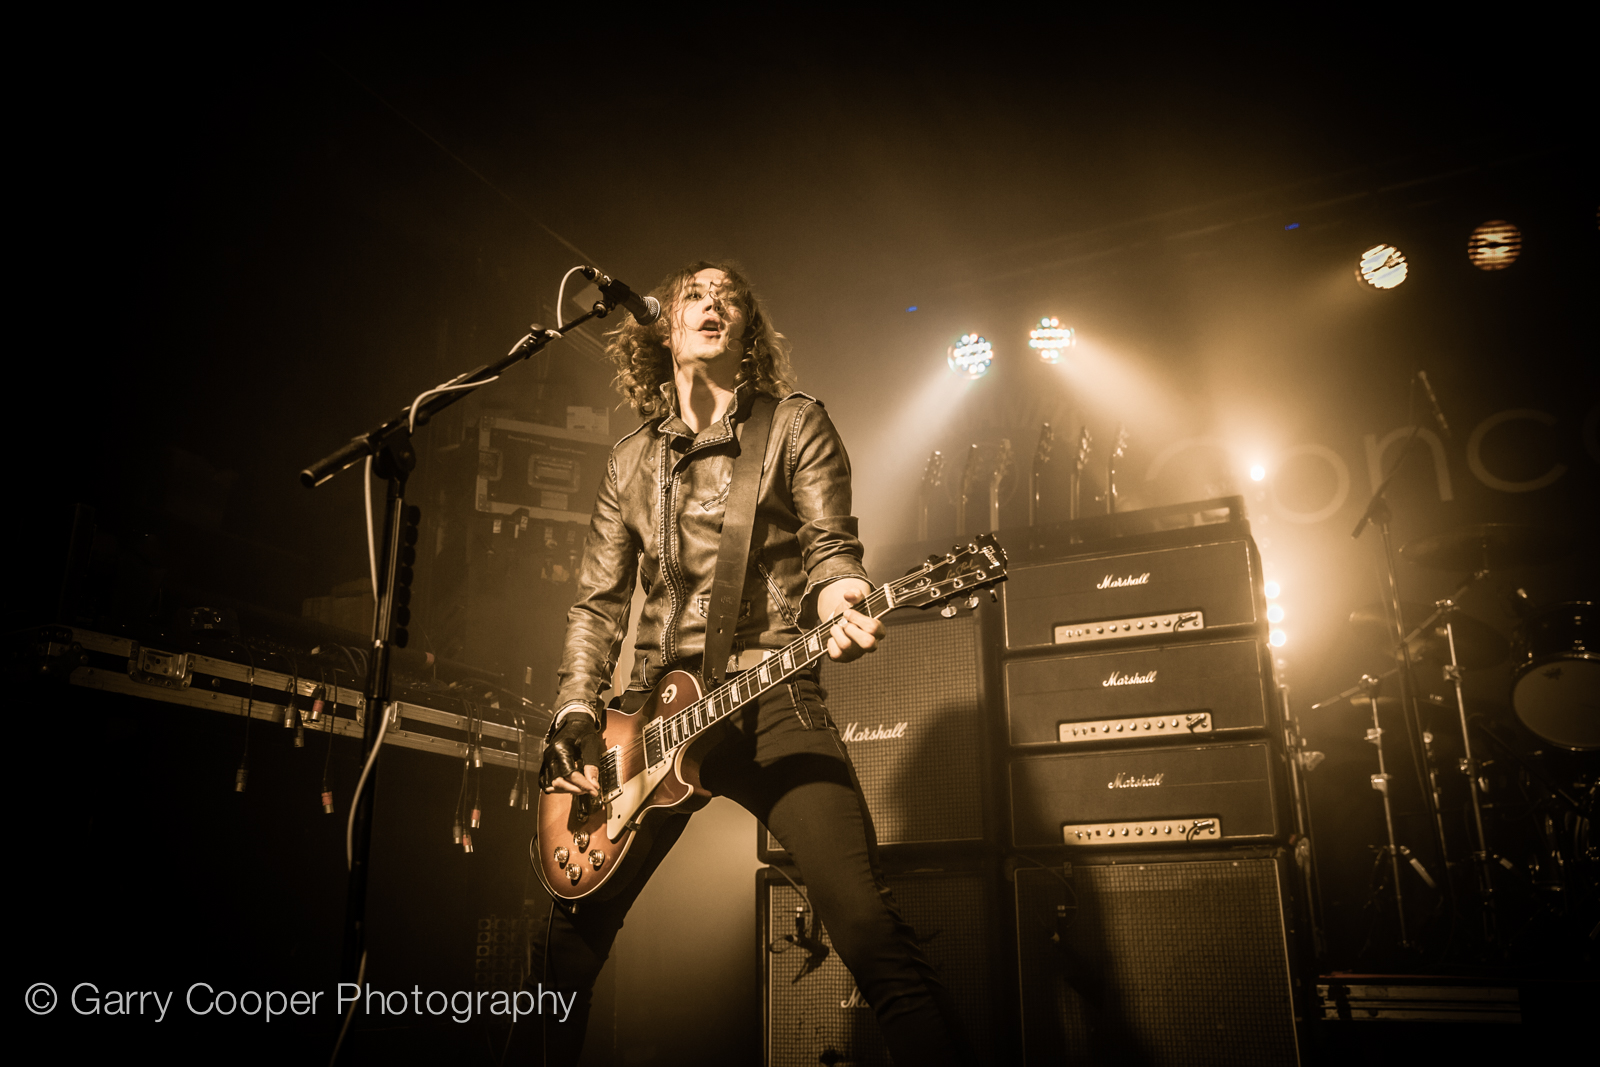 Dan Hawkins, The Darkness